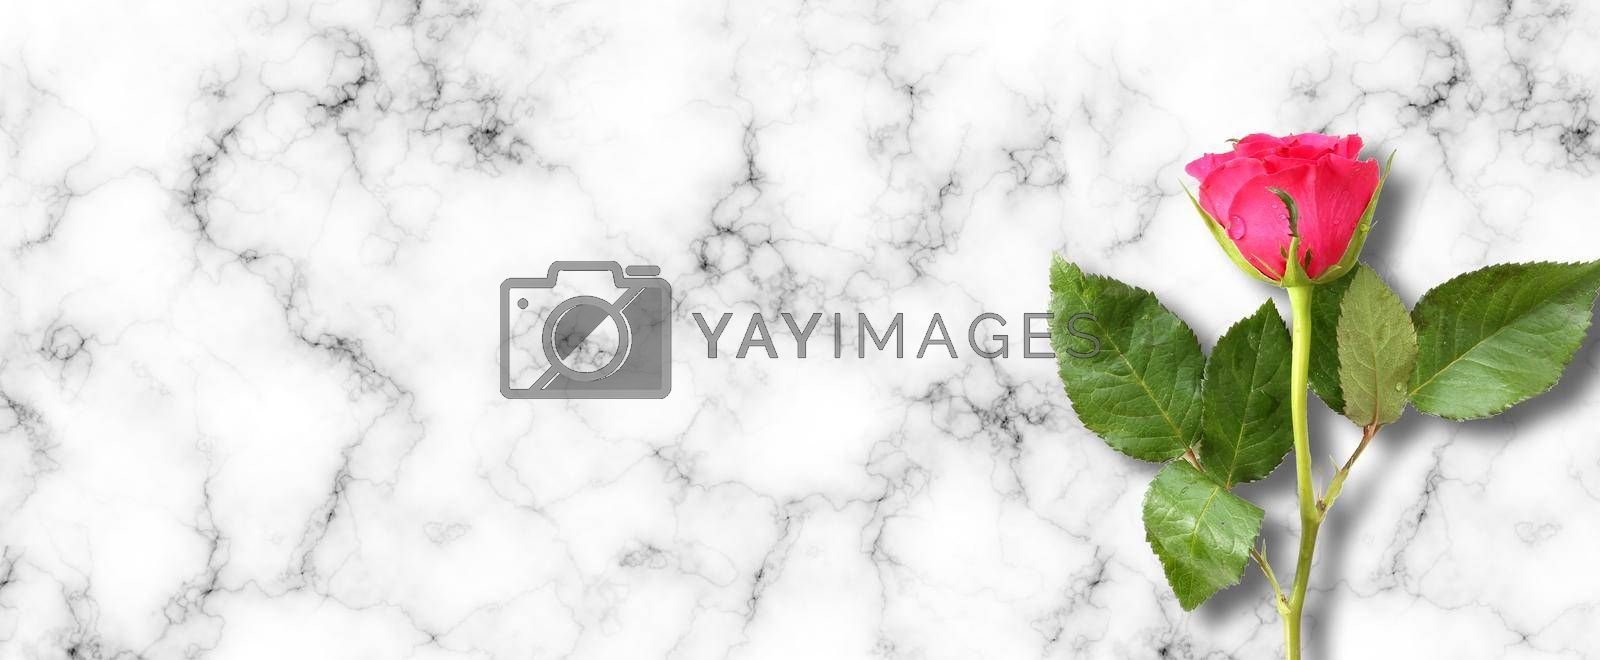 Single close up red rose on abstract marble background. Beautiful one flower over white grey background